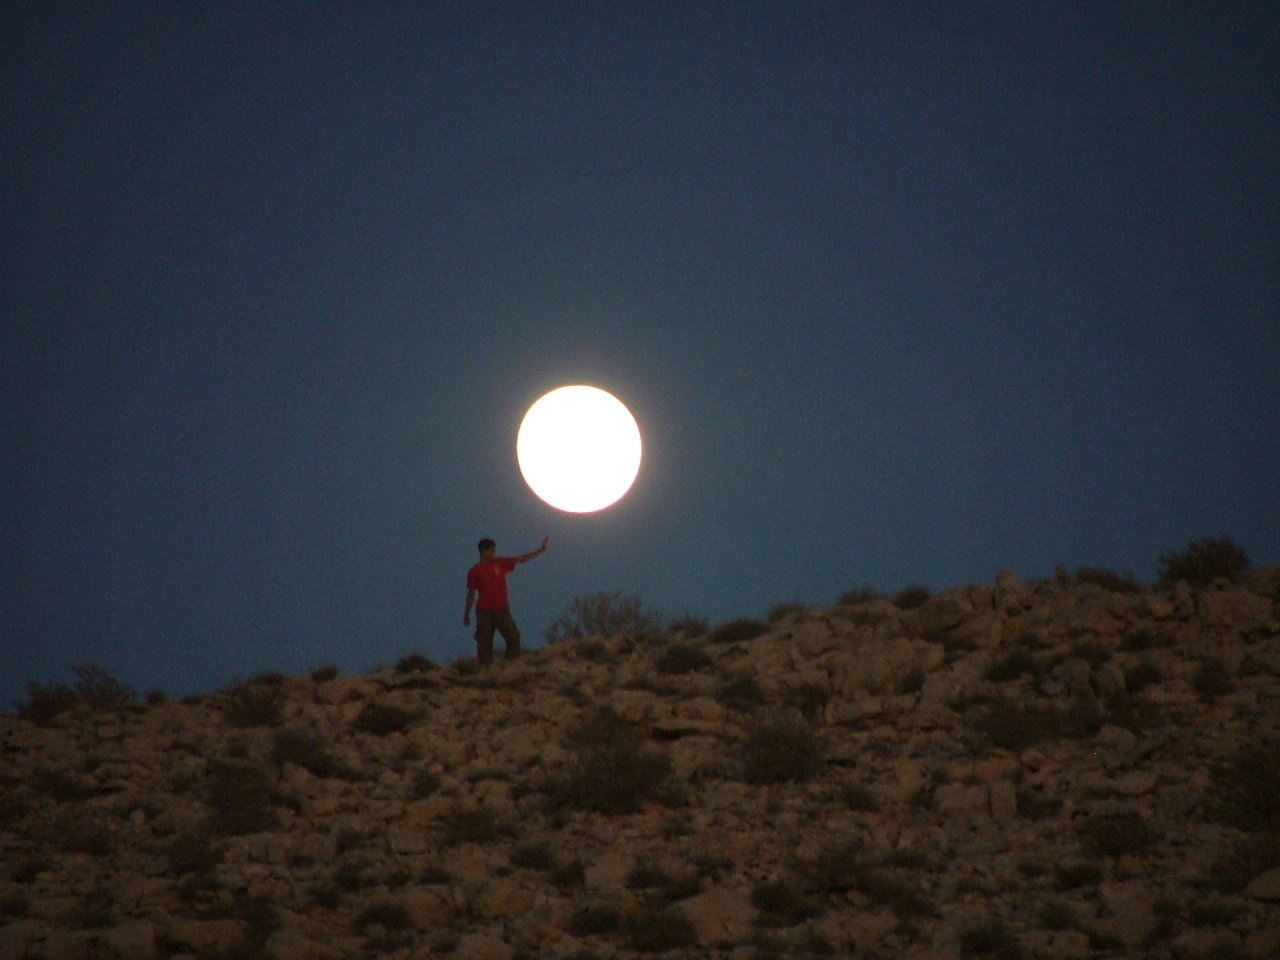 Moon at Carmey Avdat Desert Estat